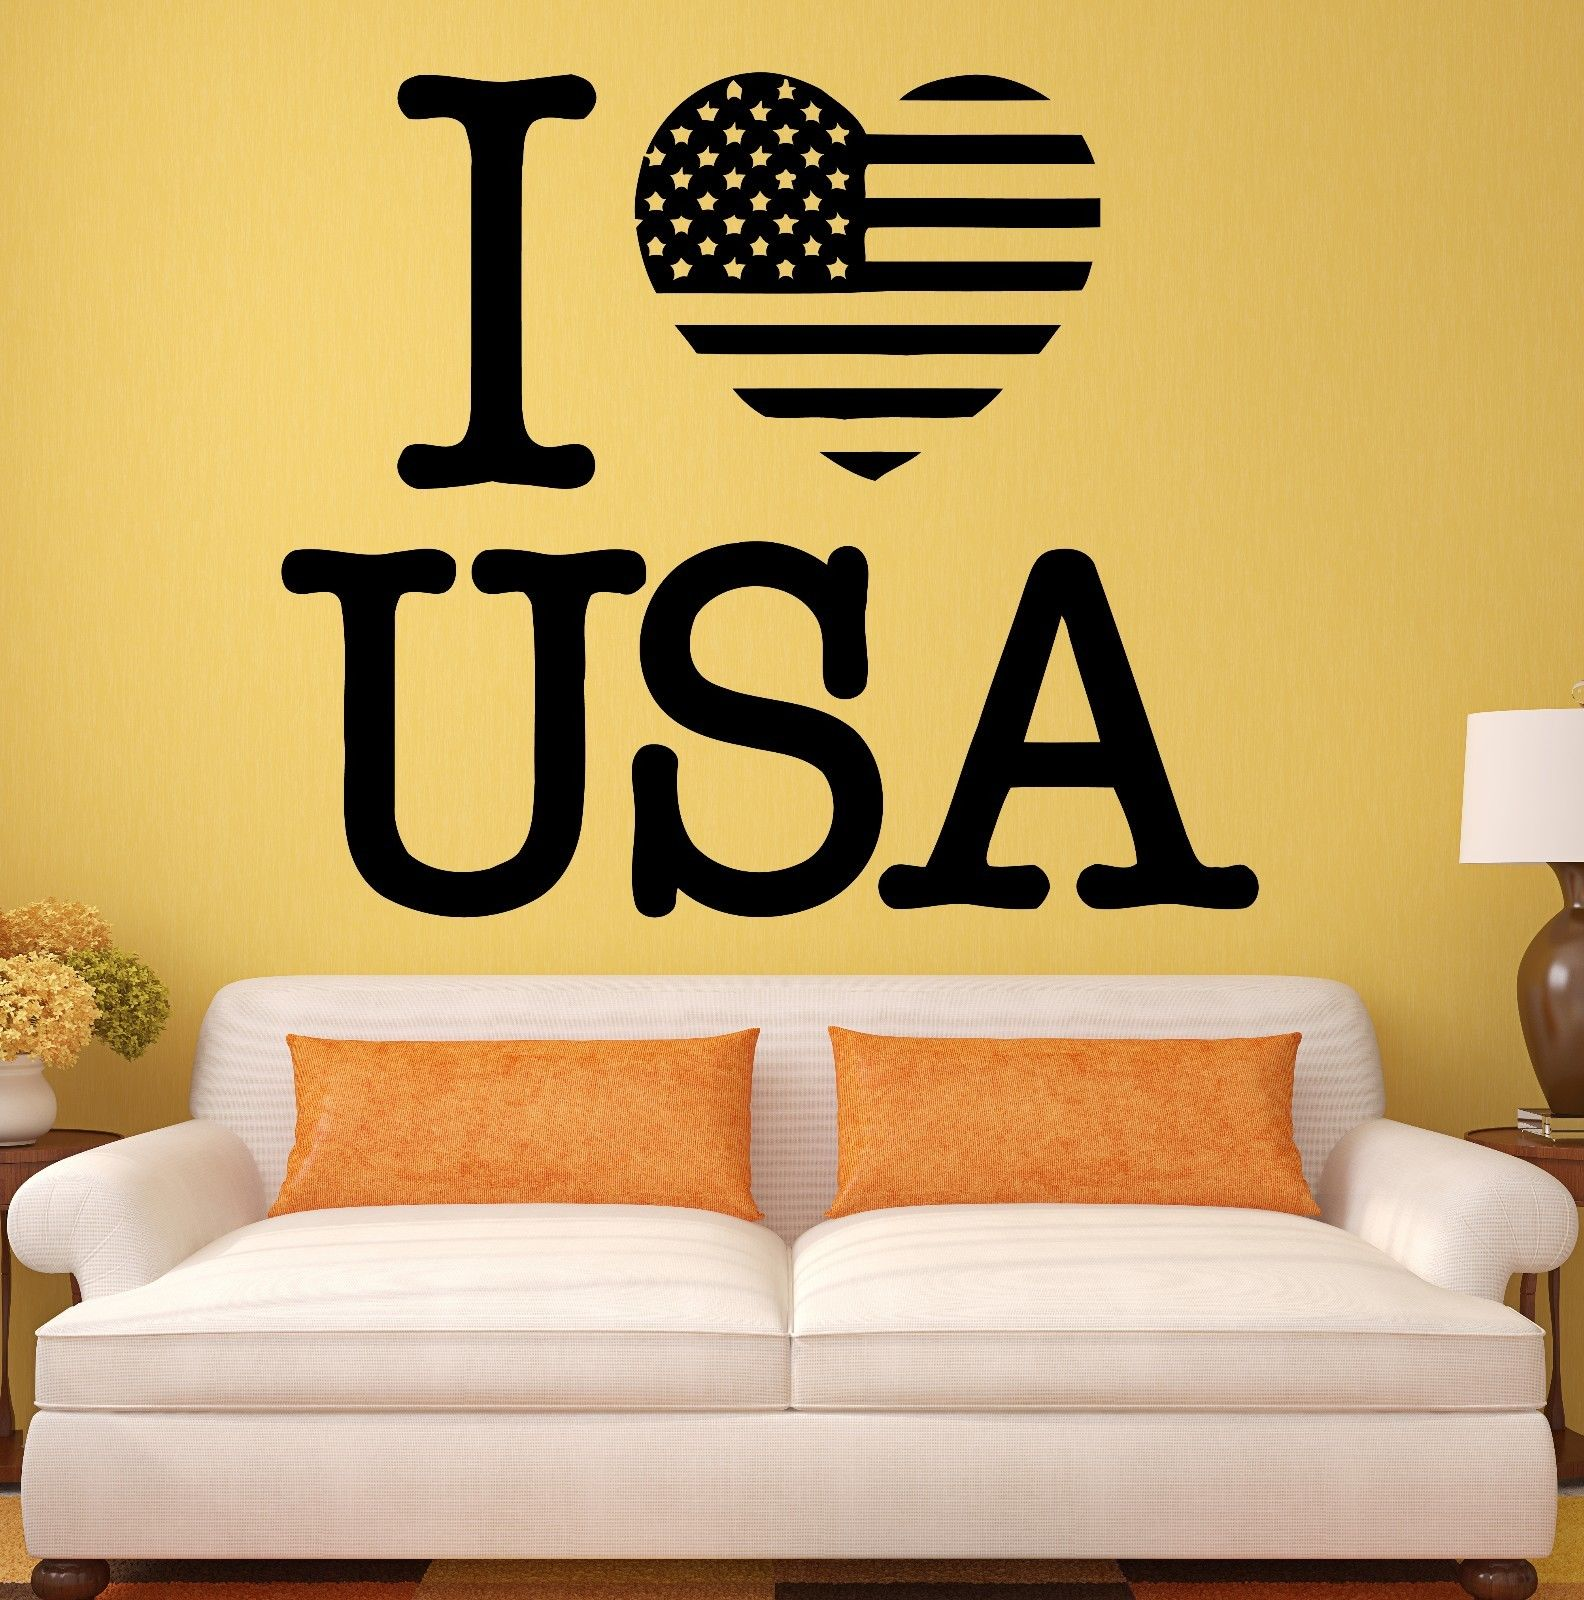 Wall stickers usa image collections home wall decoration ideas wall stickers usa images home wall decoration ideas wall stickers usa usa map wall sticker united amipublicfo Choice Image